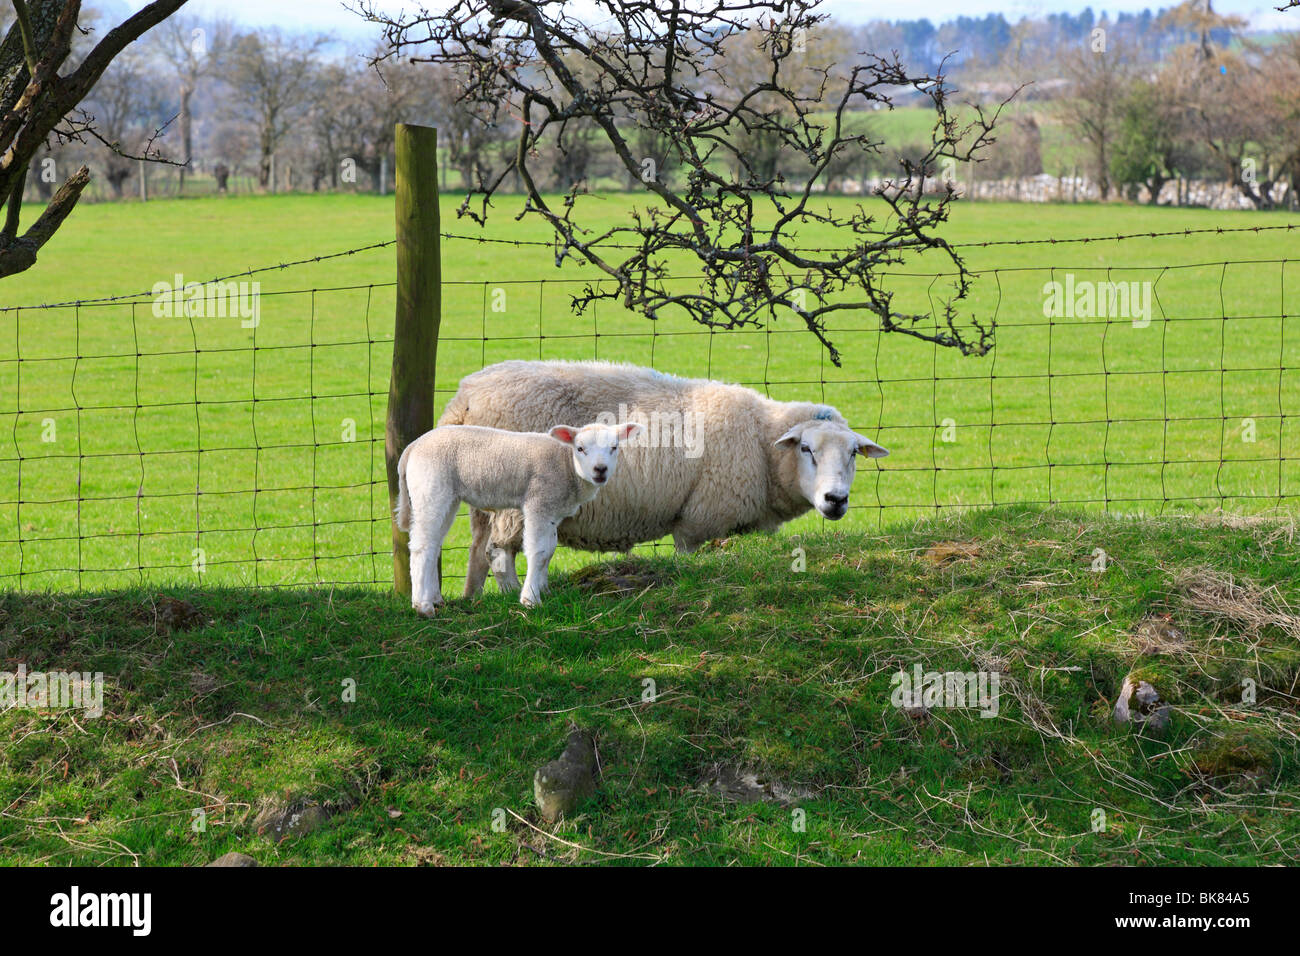 Ewe with a young lamb in a field near Leyburn, North Yorkshire, England, UK. - Stock Image